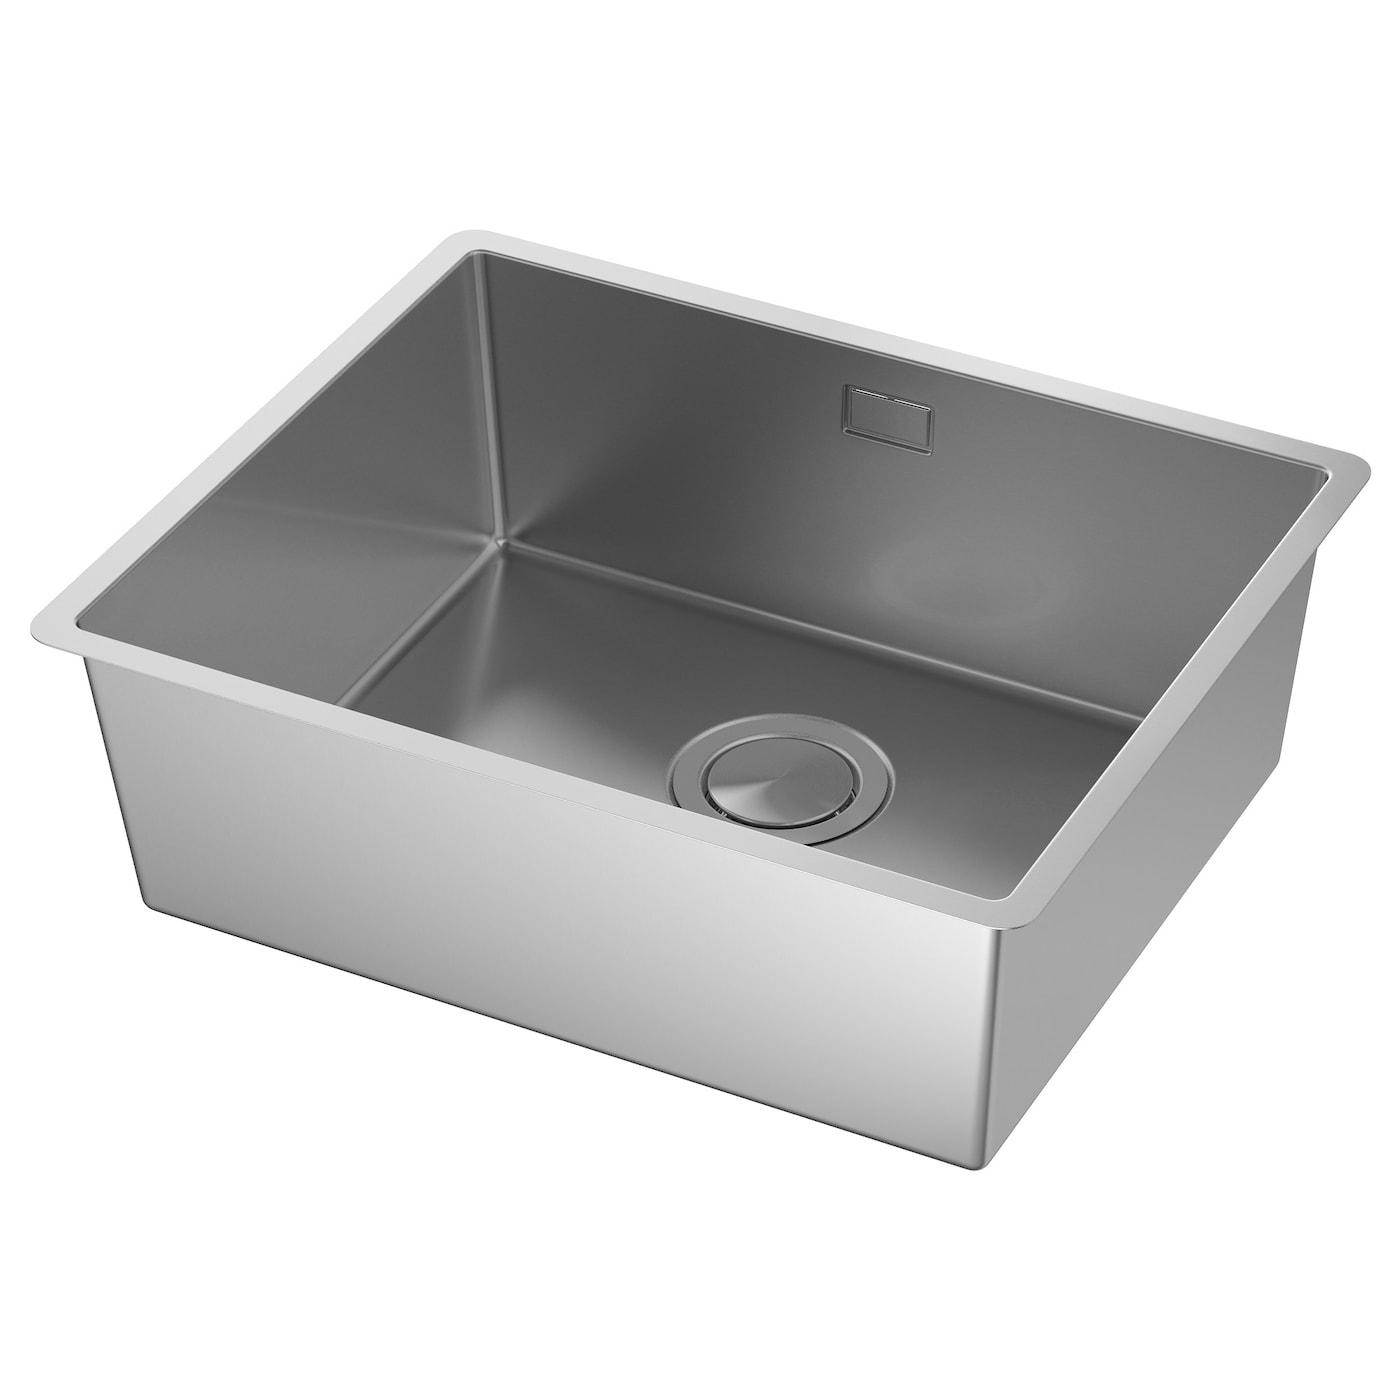 IKEA NORRSJÖN inset sink, 1 bowl 25 year guarantee. Read about the terms in the guarantee brochure.